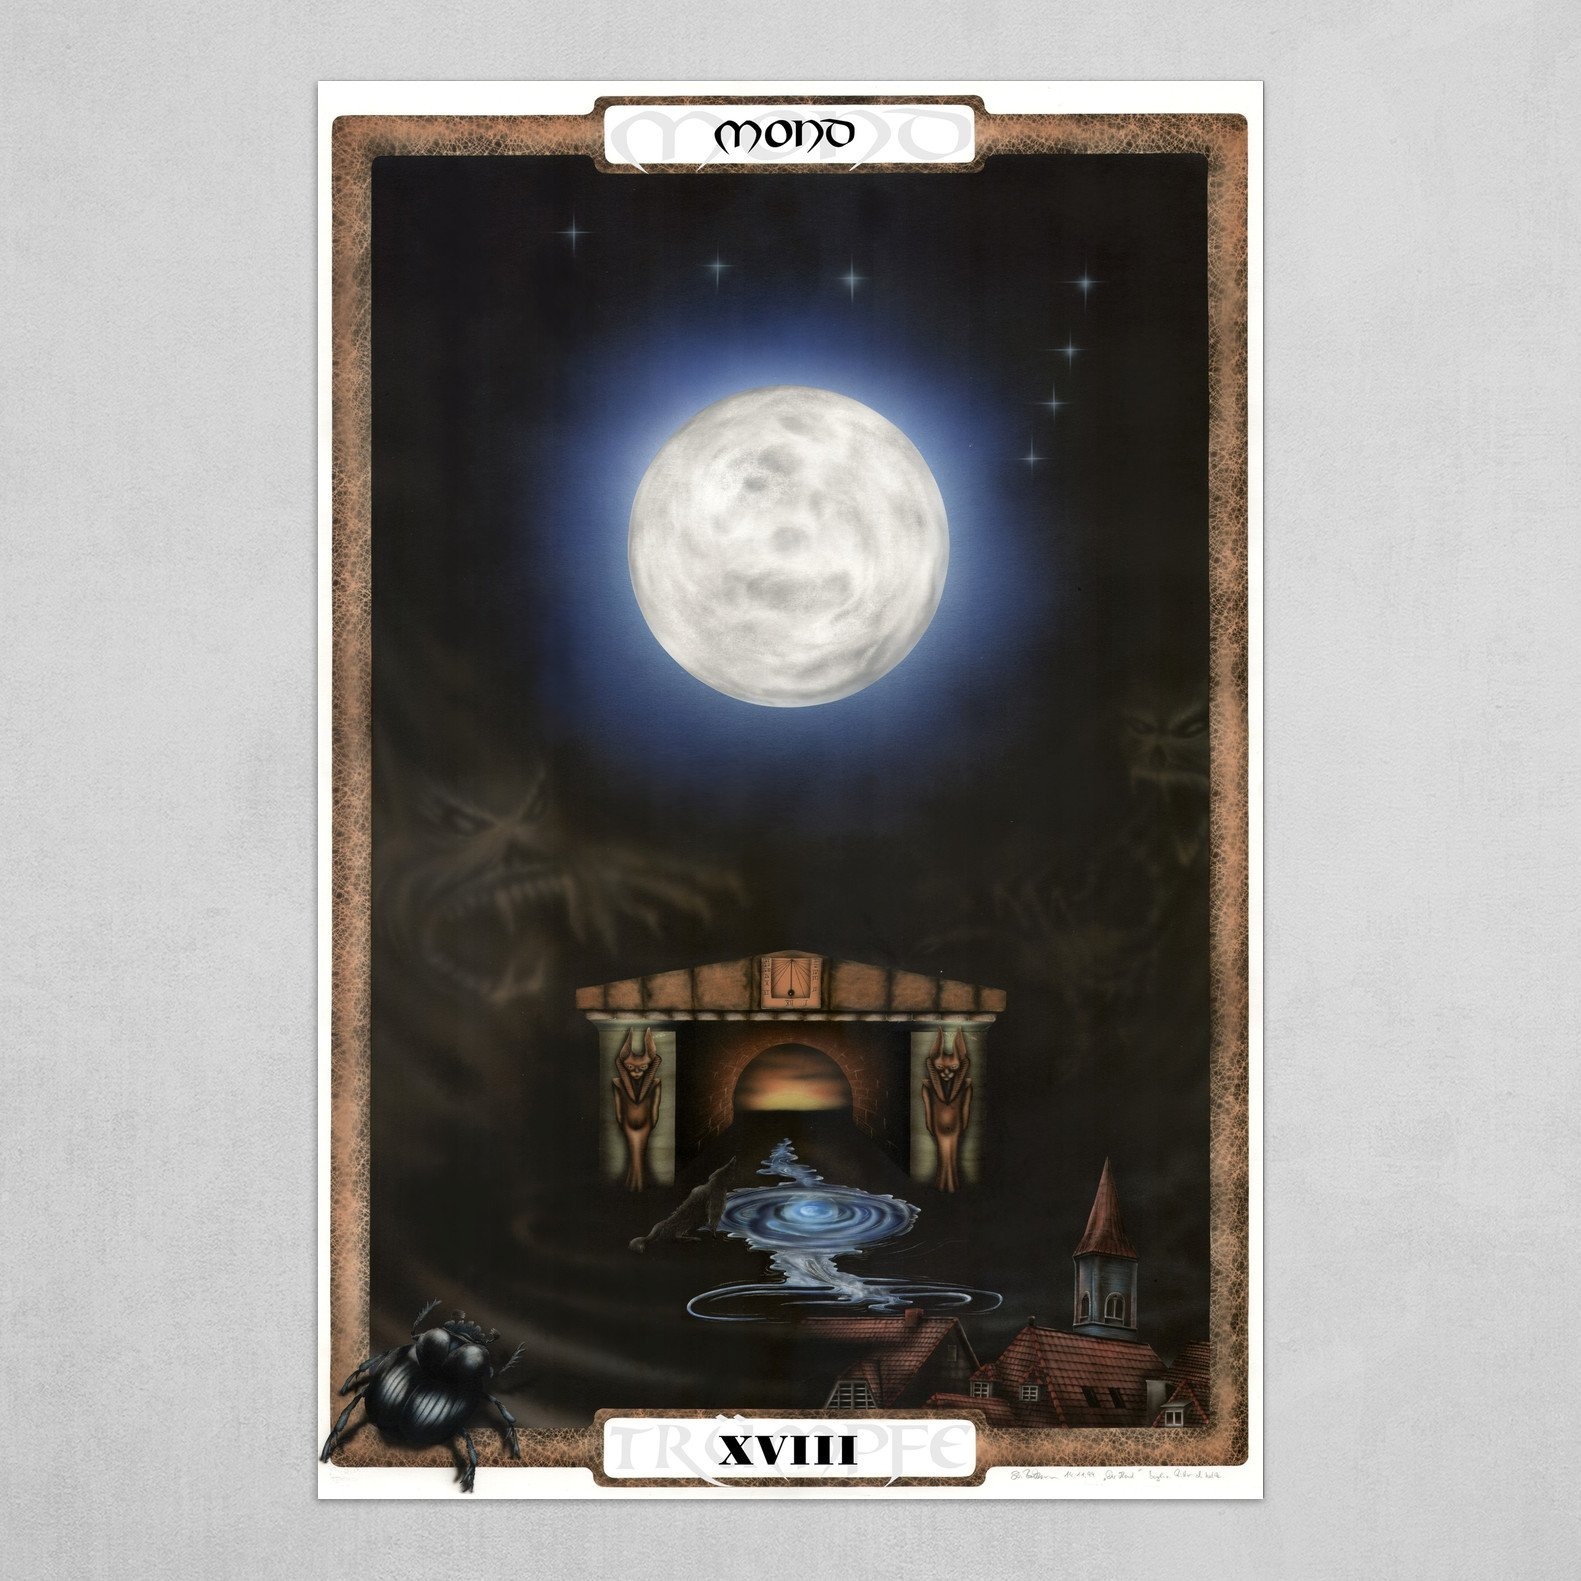 Der Mond - The Moon